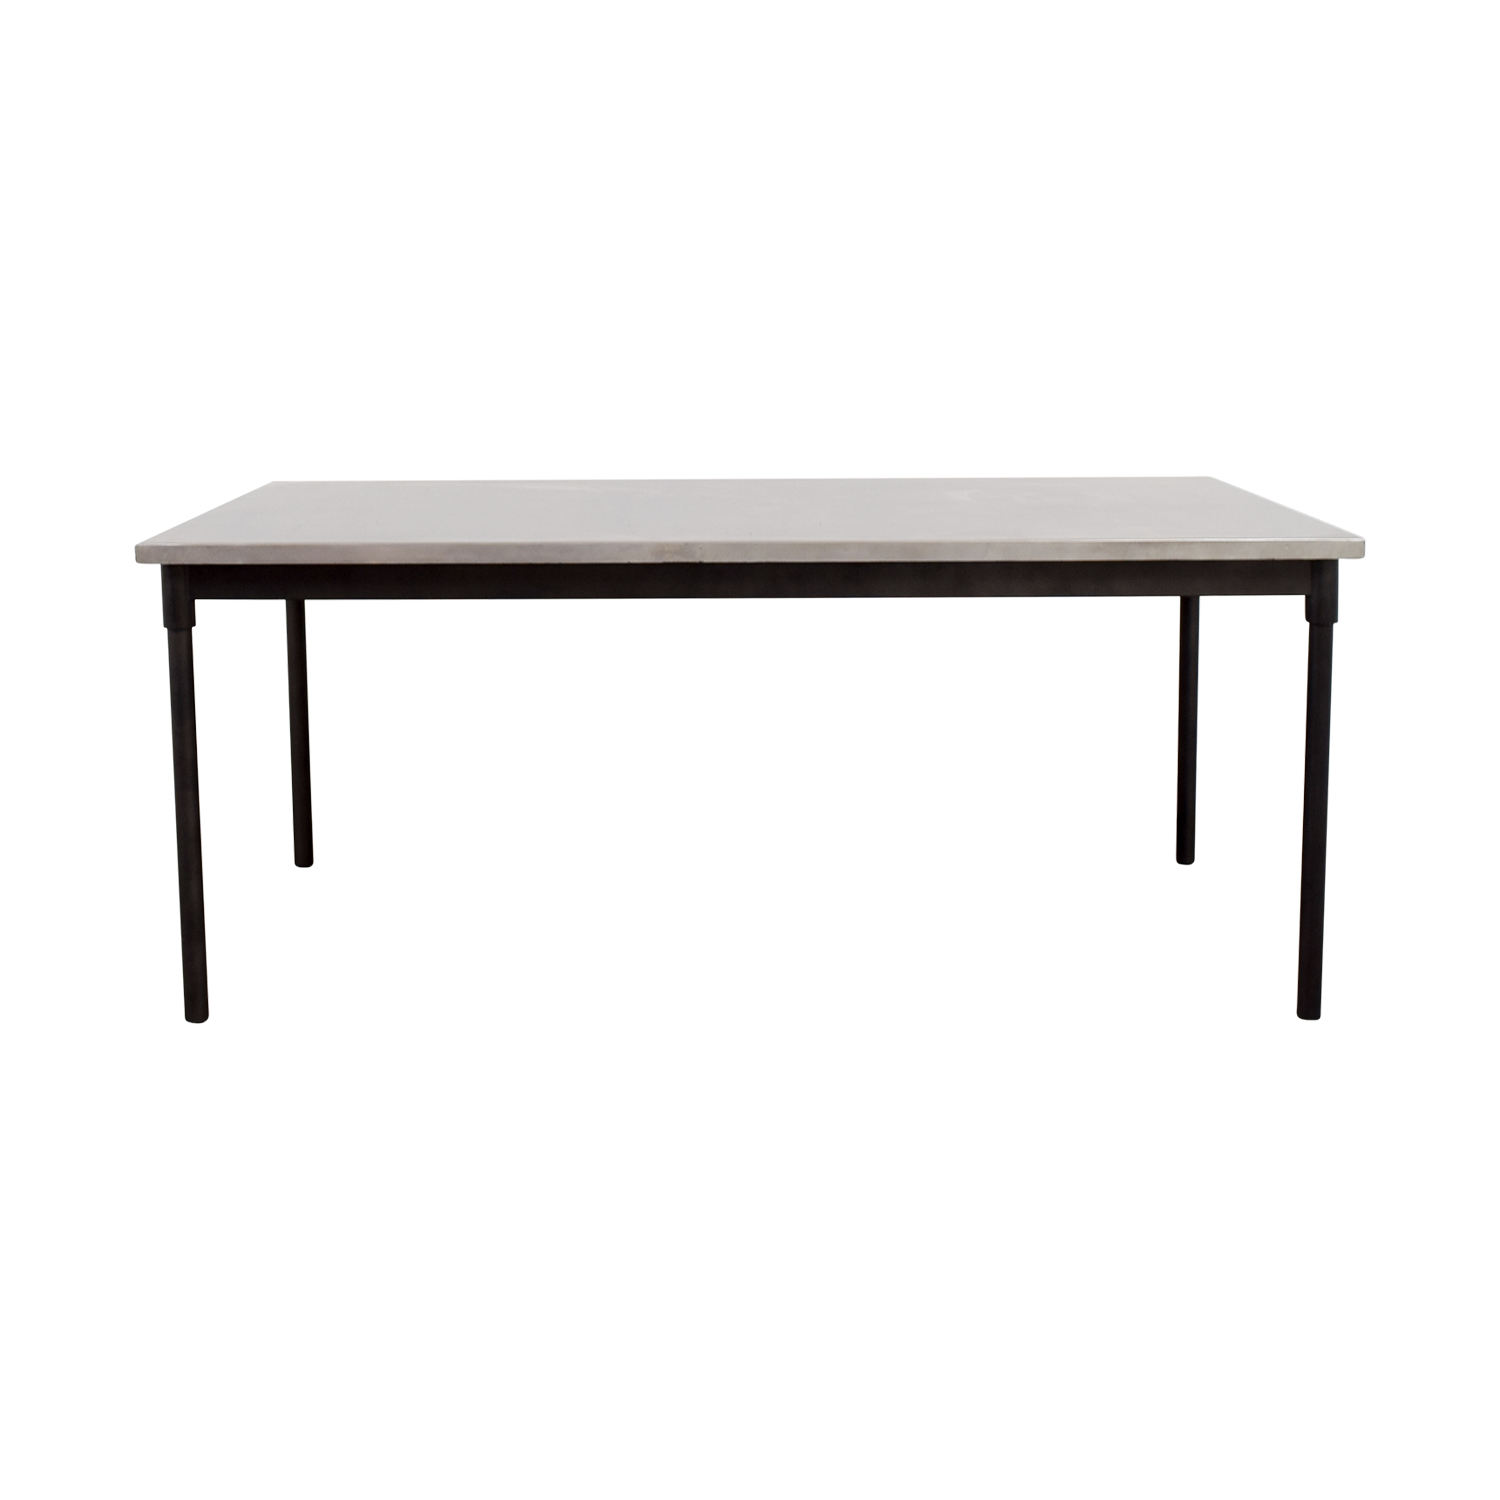 West Elm West Elm Stainless Steel Table on sale